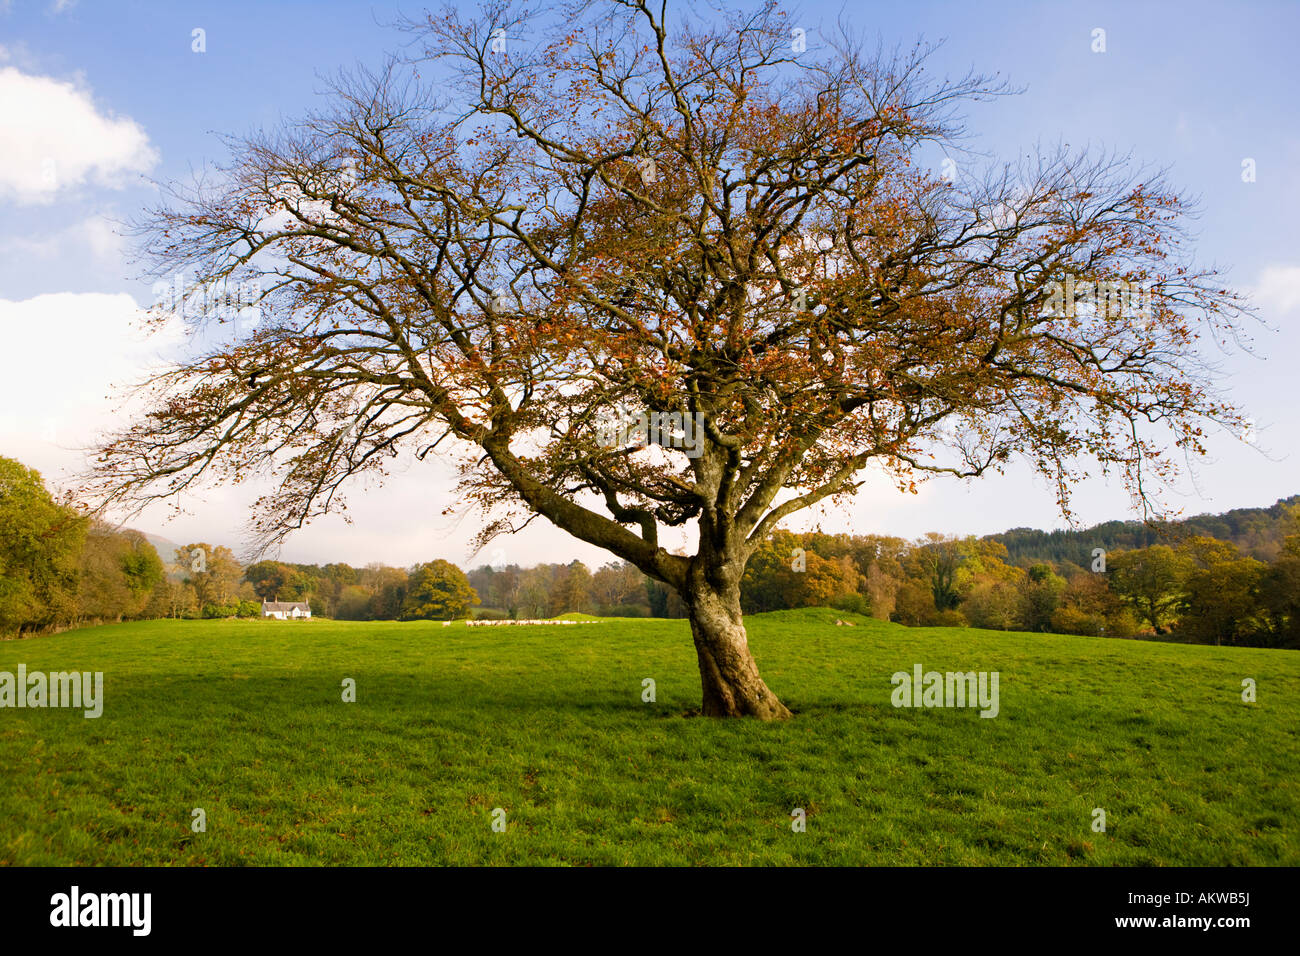 Autumn a nearly bare beech tree in the middle of a field of grass in the Galloway landscape Scotland UK - Stock Image